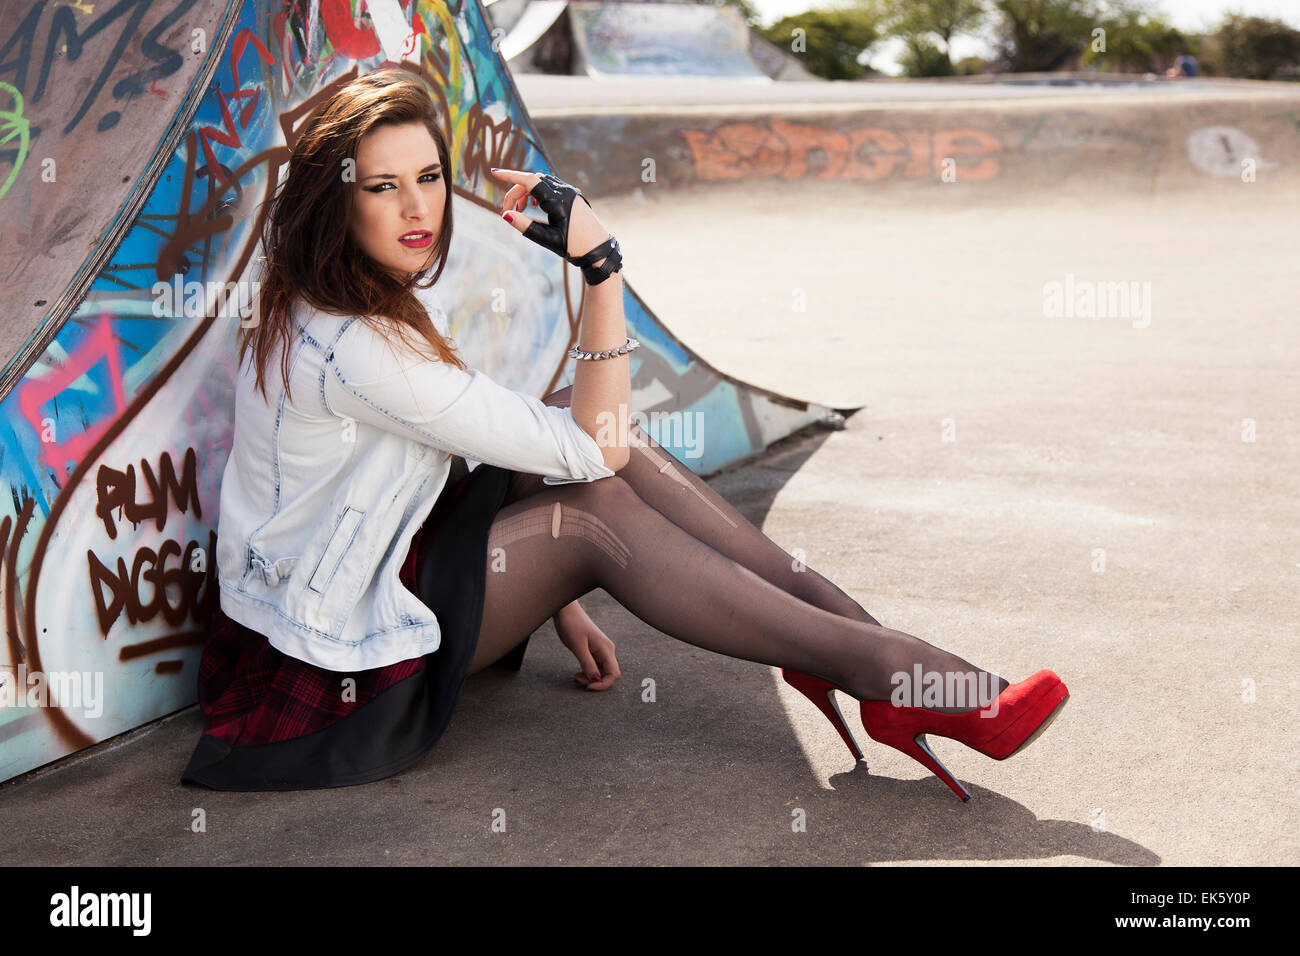 Young woman model sitting by graffiti wears punk inspired clothing with attitude in a skate park - Stock Image